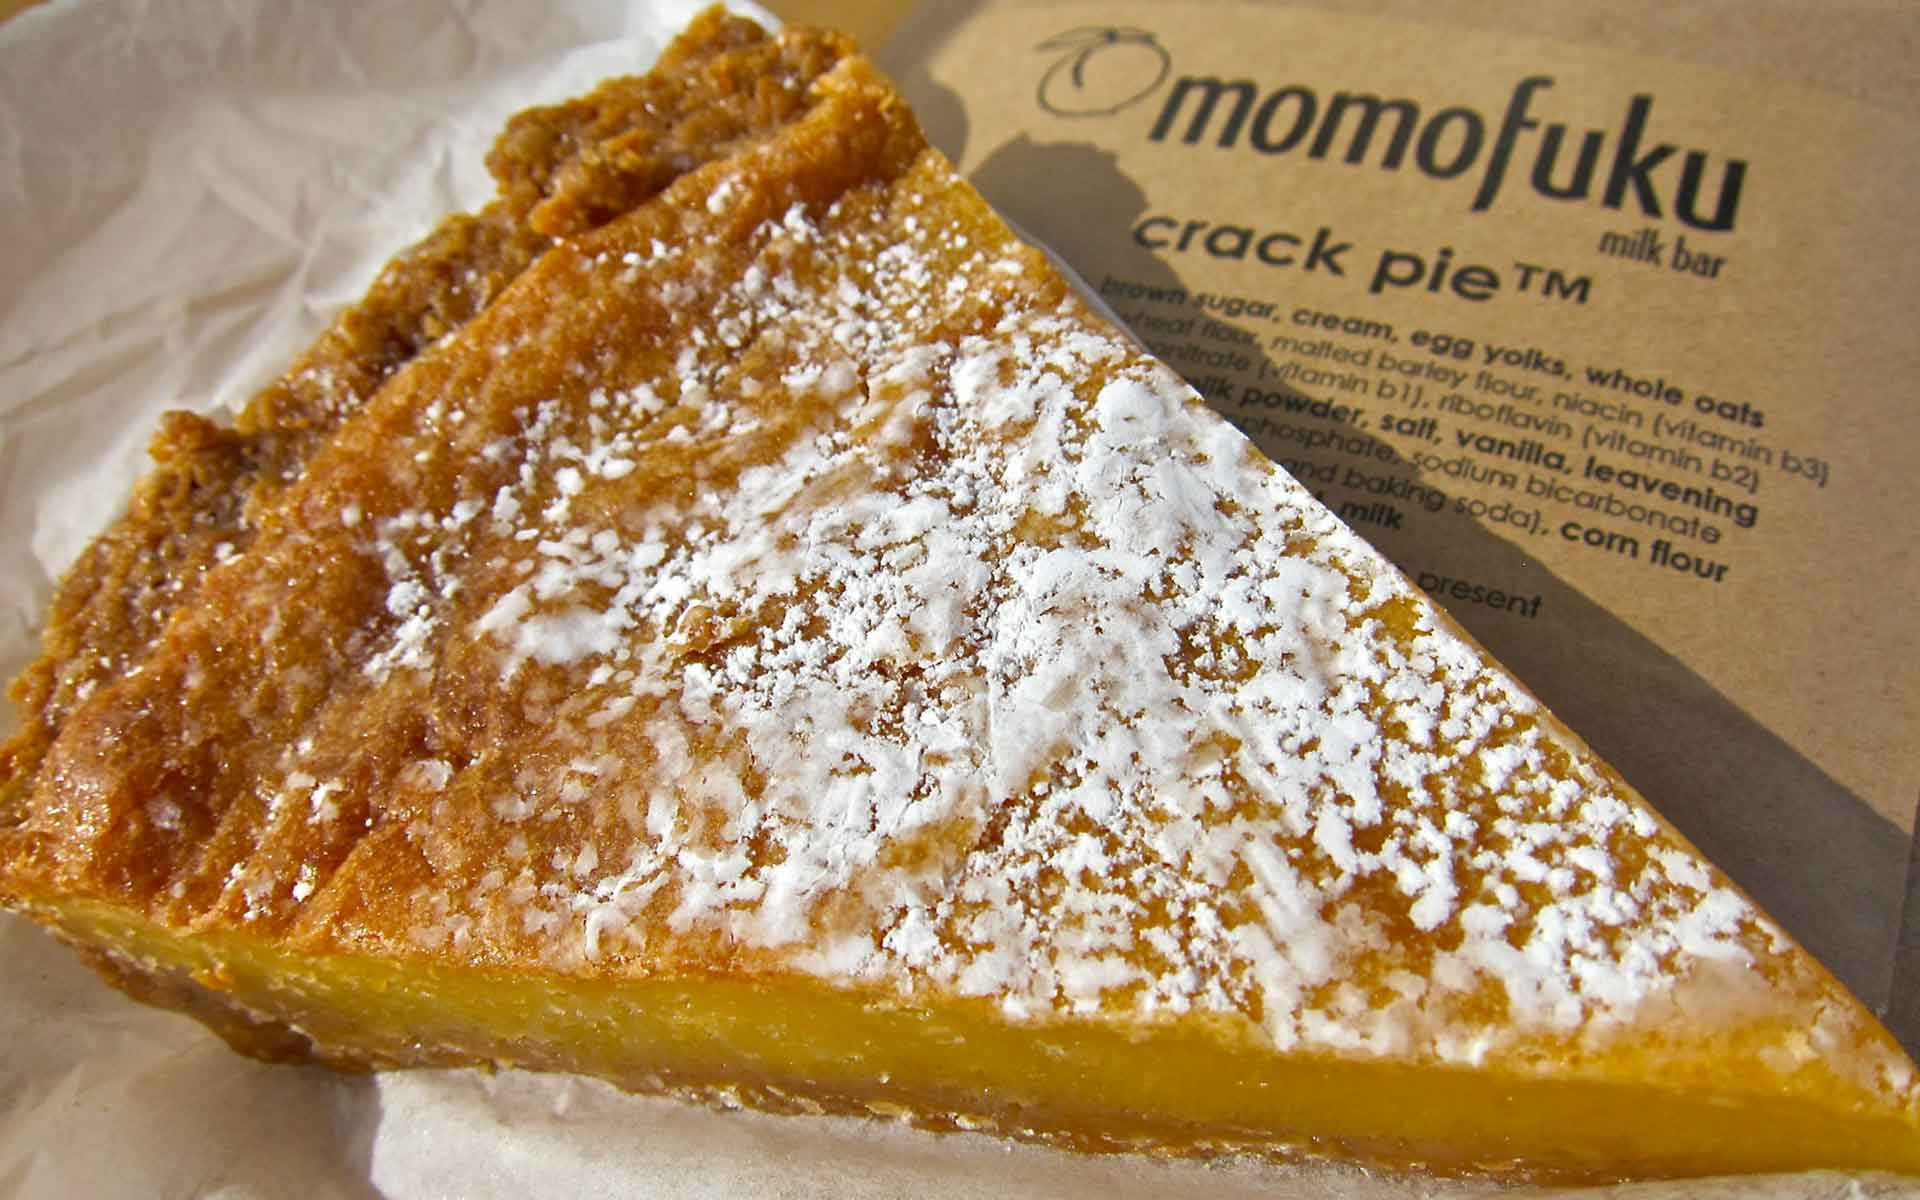 crack pie milk bar christina tosi nyc new york